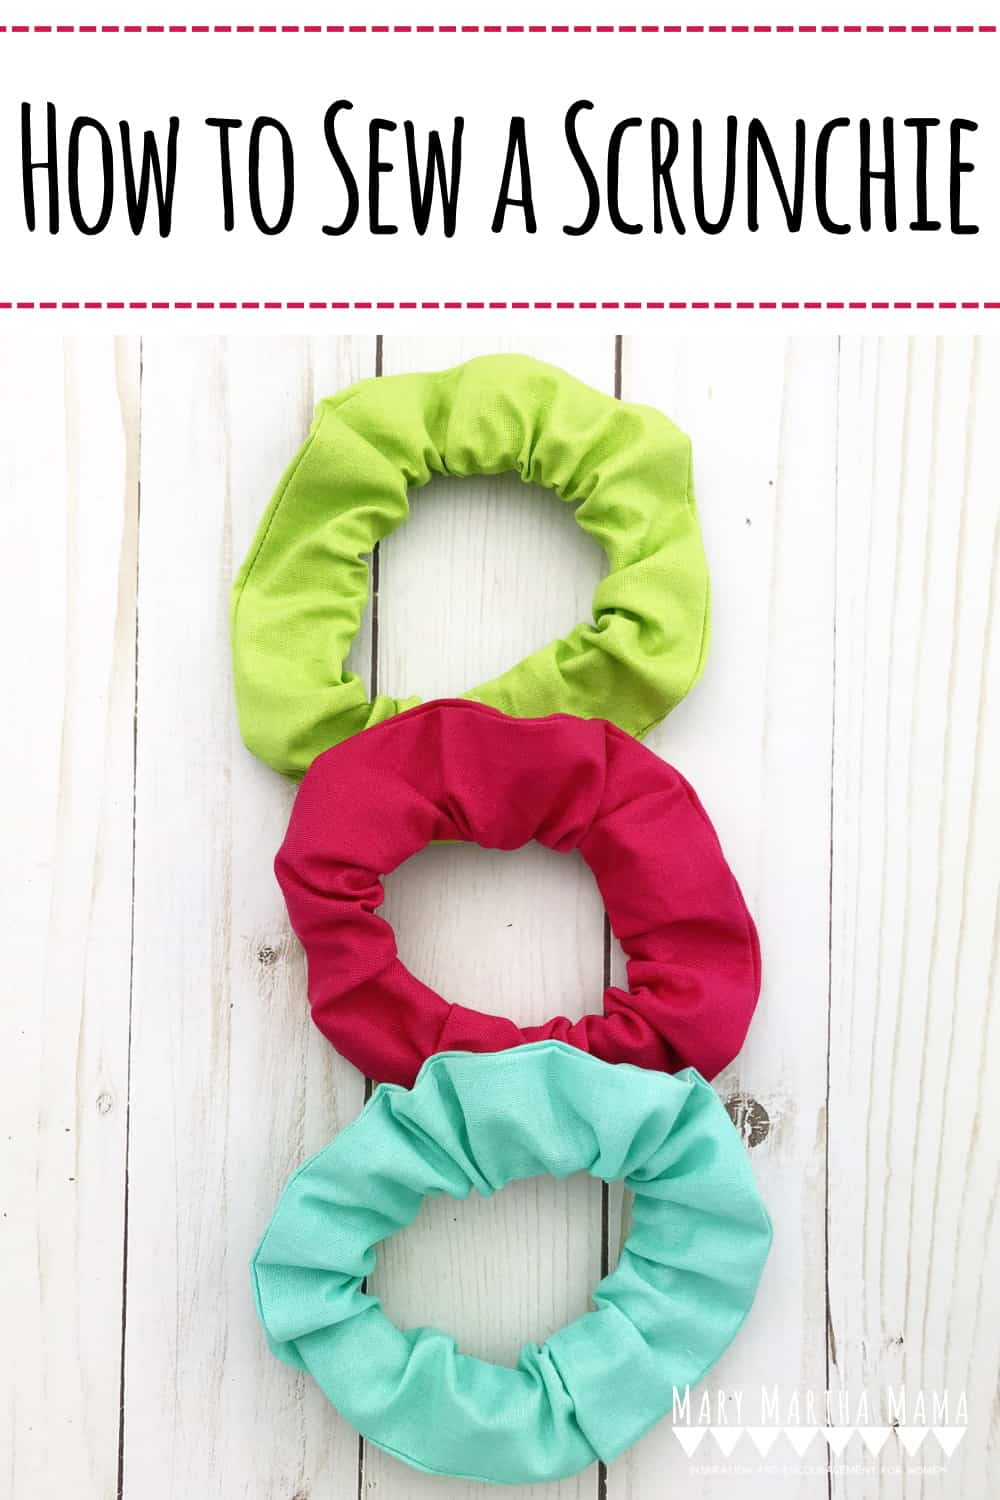 How to Sew a Scrunchie- You can easily sew a scrunchie from some long scraps of fabric and elastic following this tutorial.